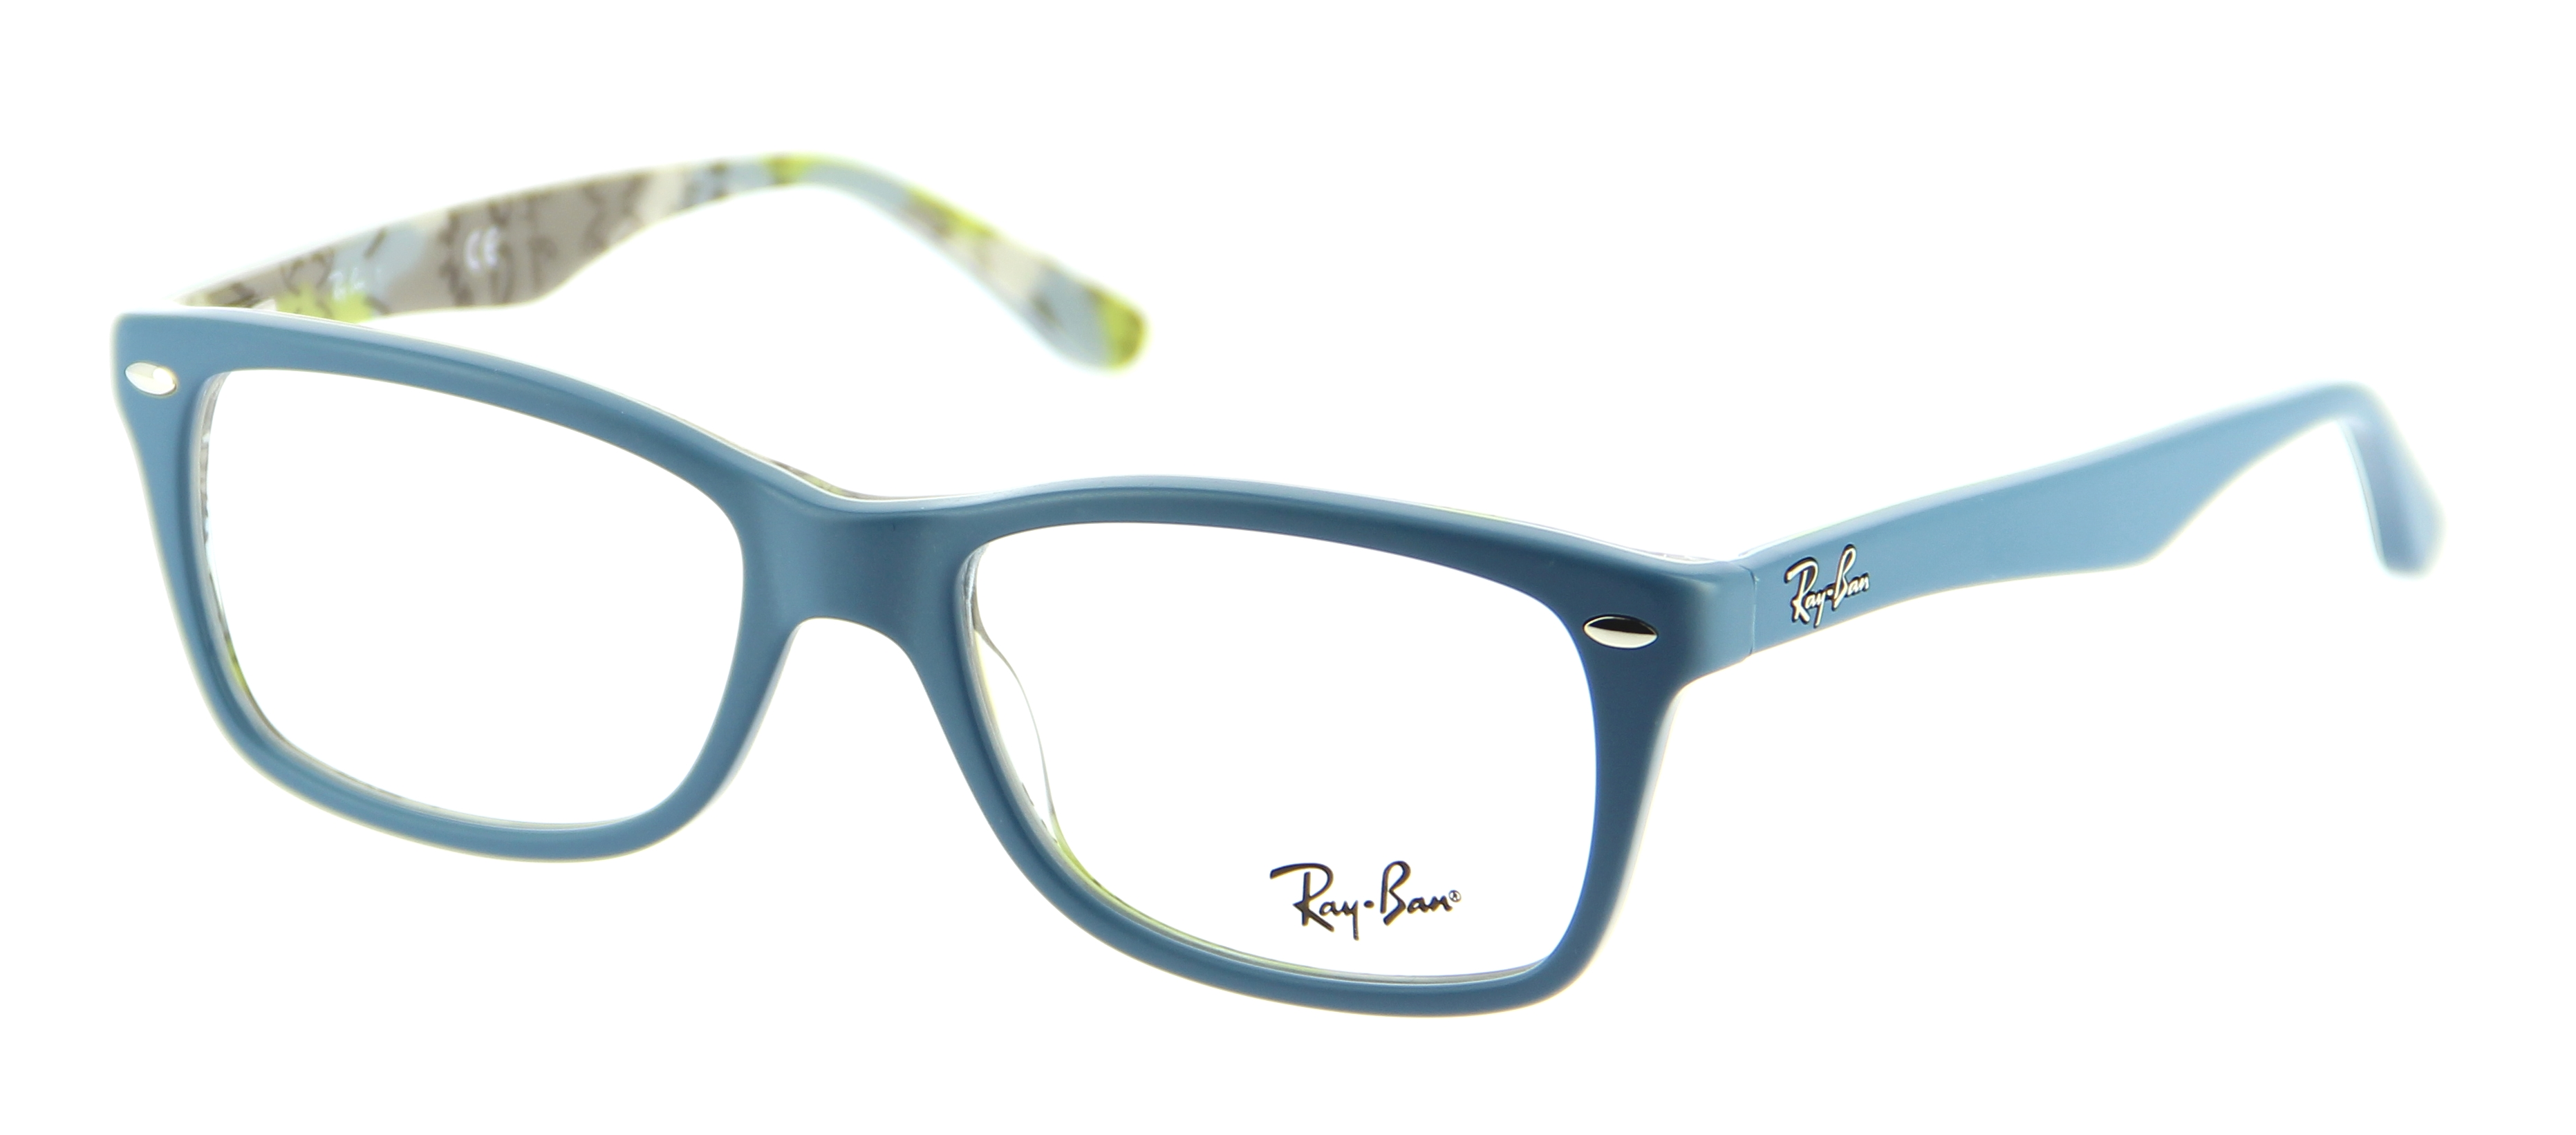 Ray Ban Prescription Eyeglasses Pearle Vision « Heritage Malta